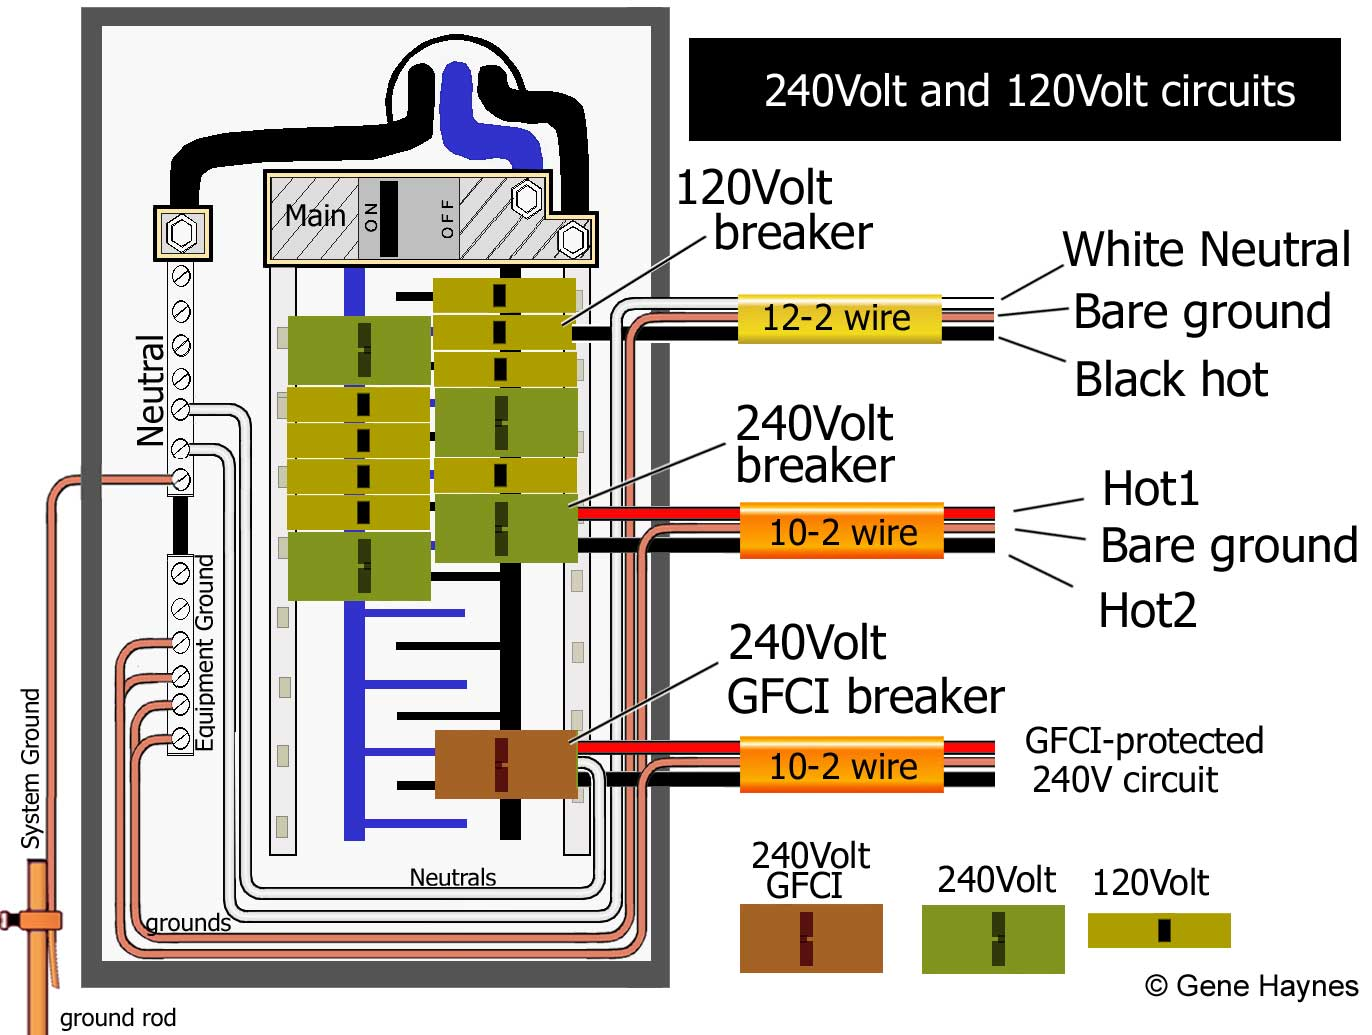 how to install and troubleshoot gfci larger image how to wire 2 pole 240volt gfci circuit breaker illustration shows 2 pole 208 240volt gfci the ordinary 240volt breaker does not have white